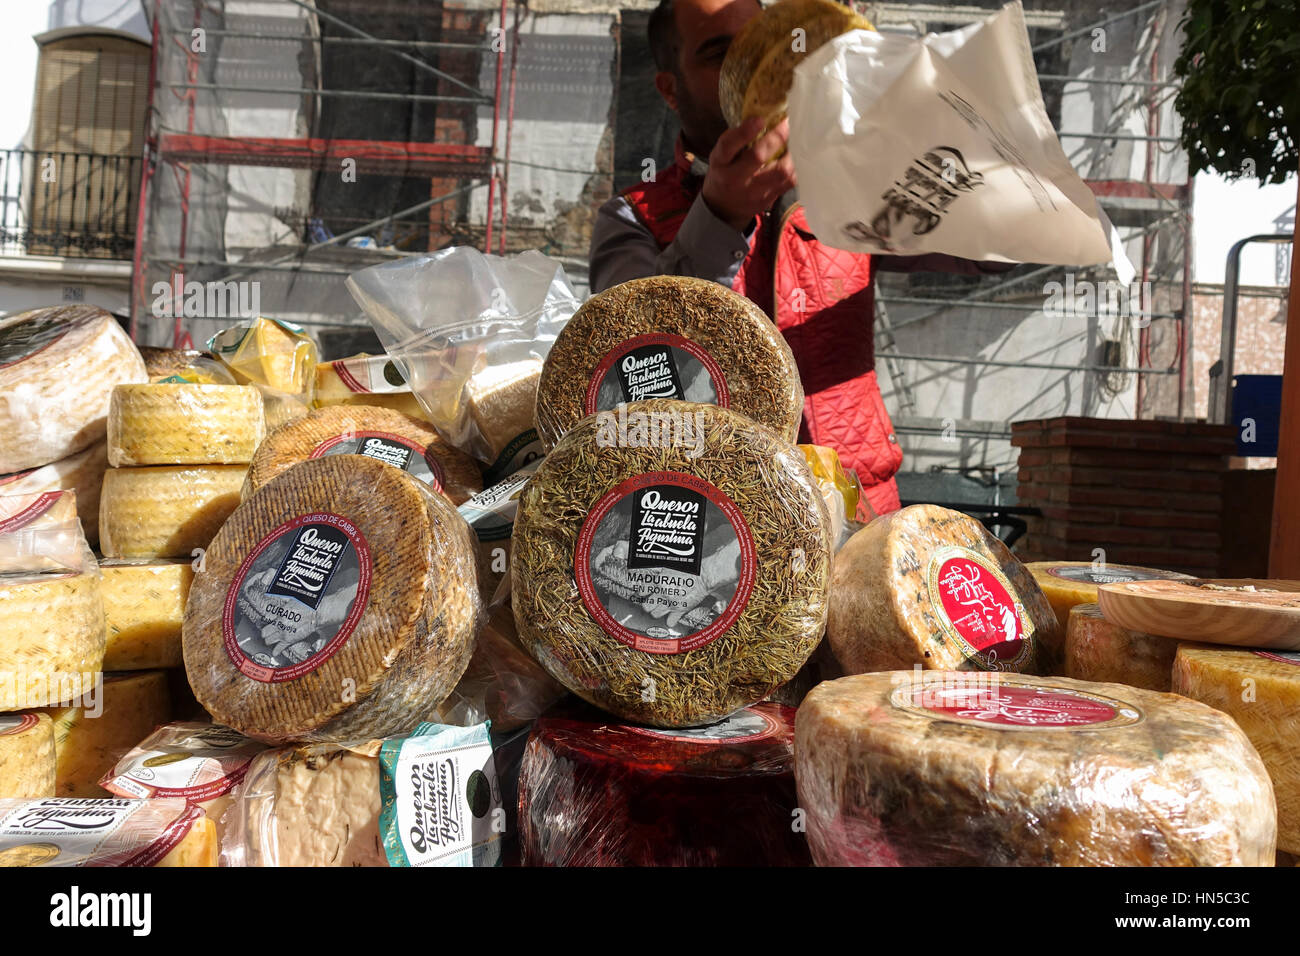 Spanish goat cheese cheeses on display at Fiesta de matanza, Annual Celebrations in Ardales.Andalusia, Spain. Stock Photo